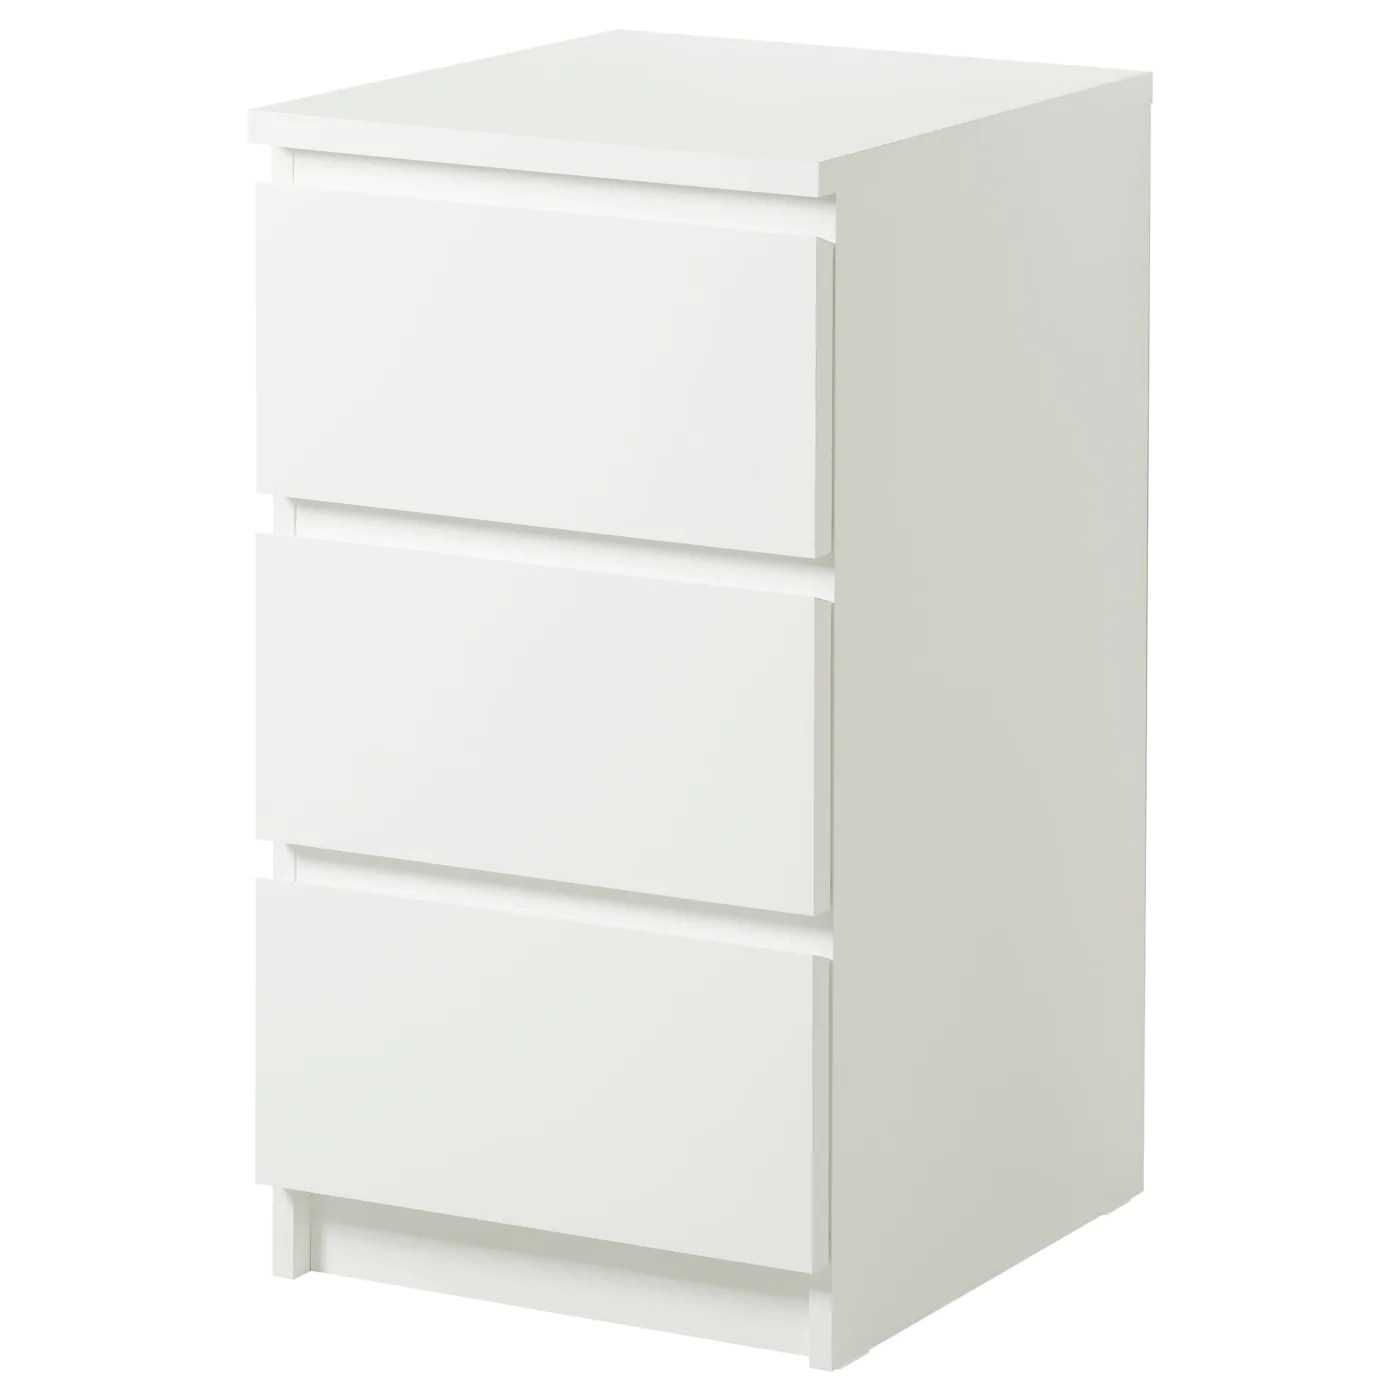 Kast 80 Cm Breed 40 Diep Malm Dressing Table White 120 X 41 Cm Ikea